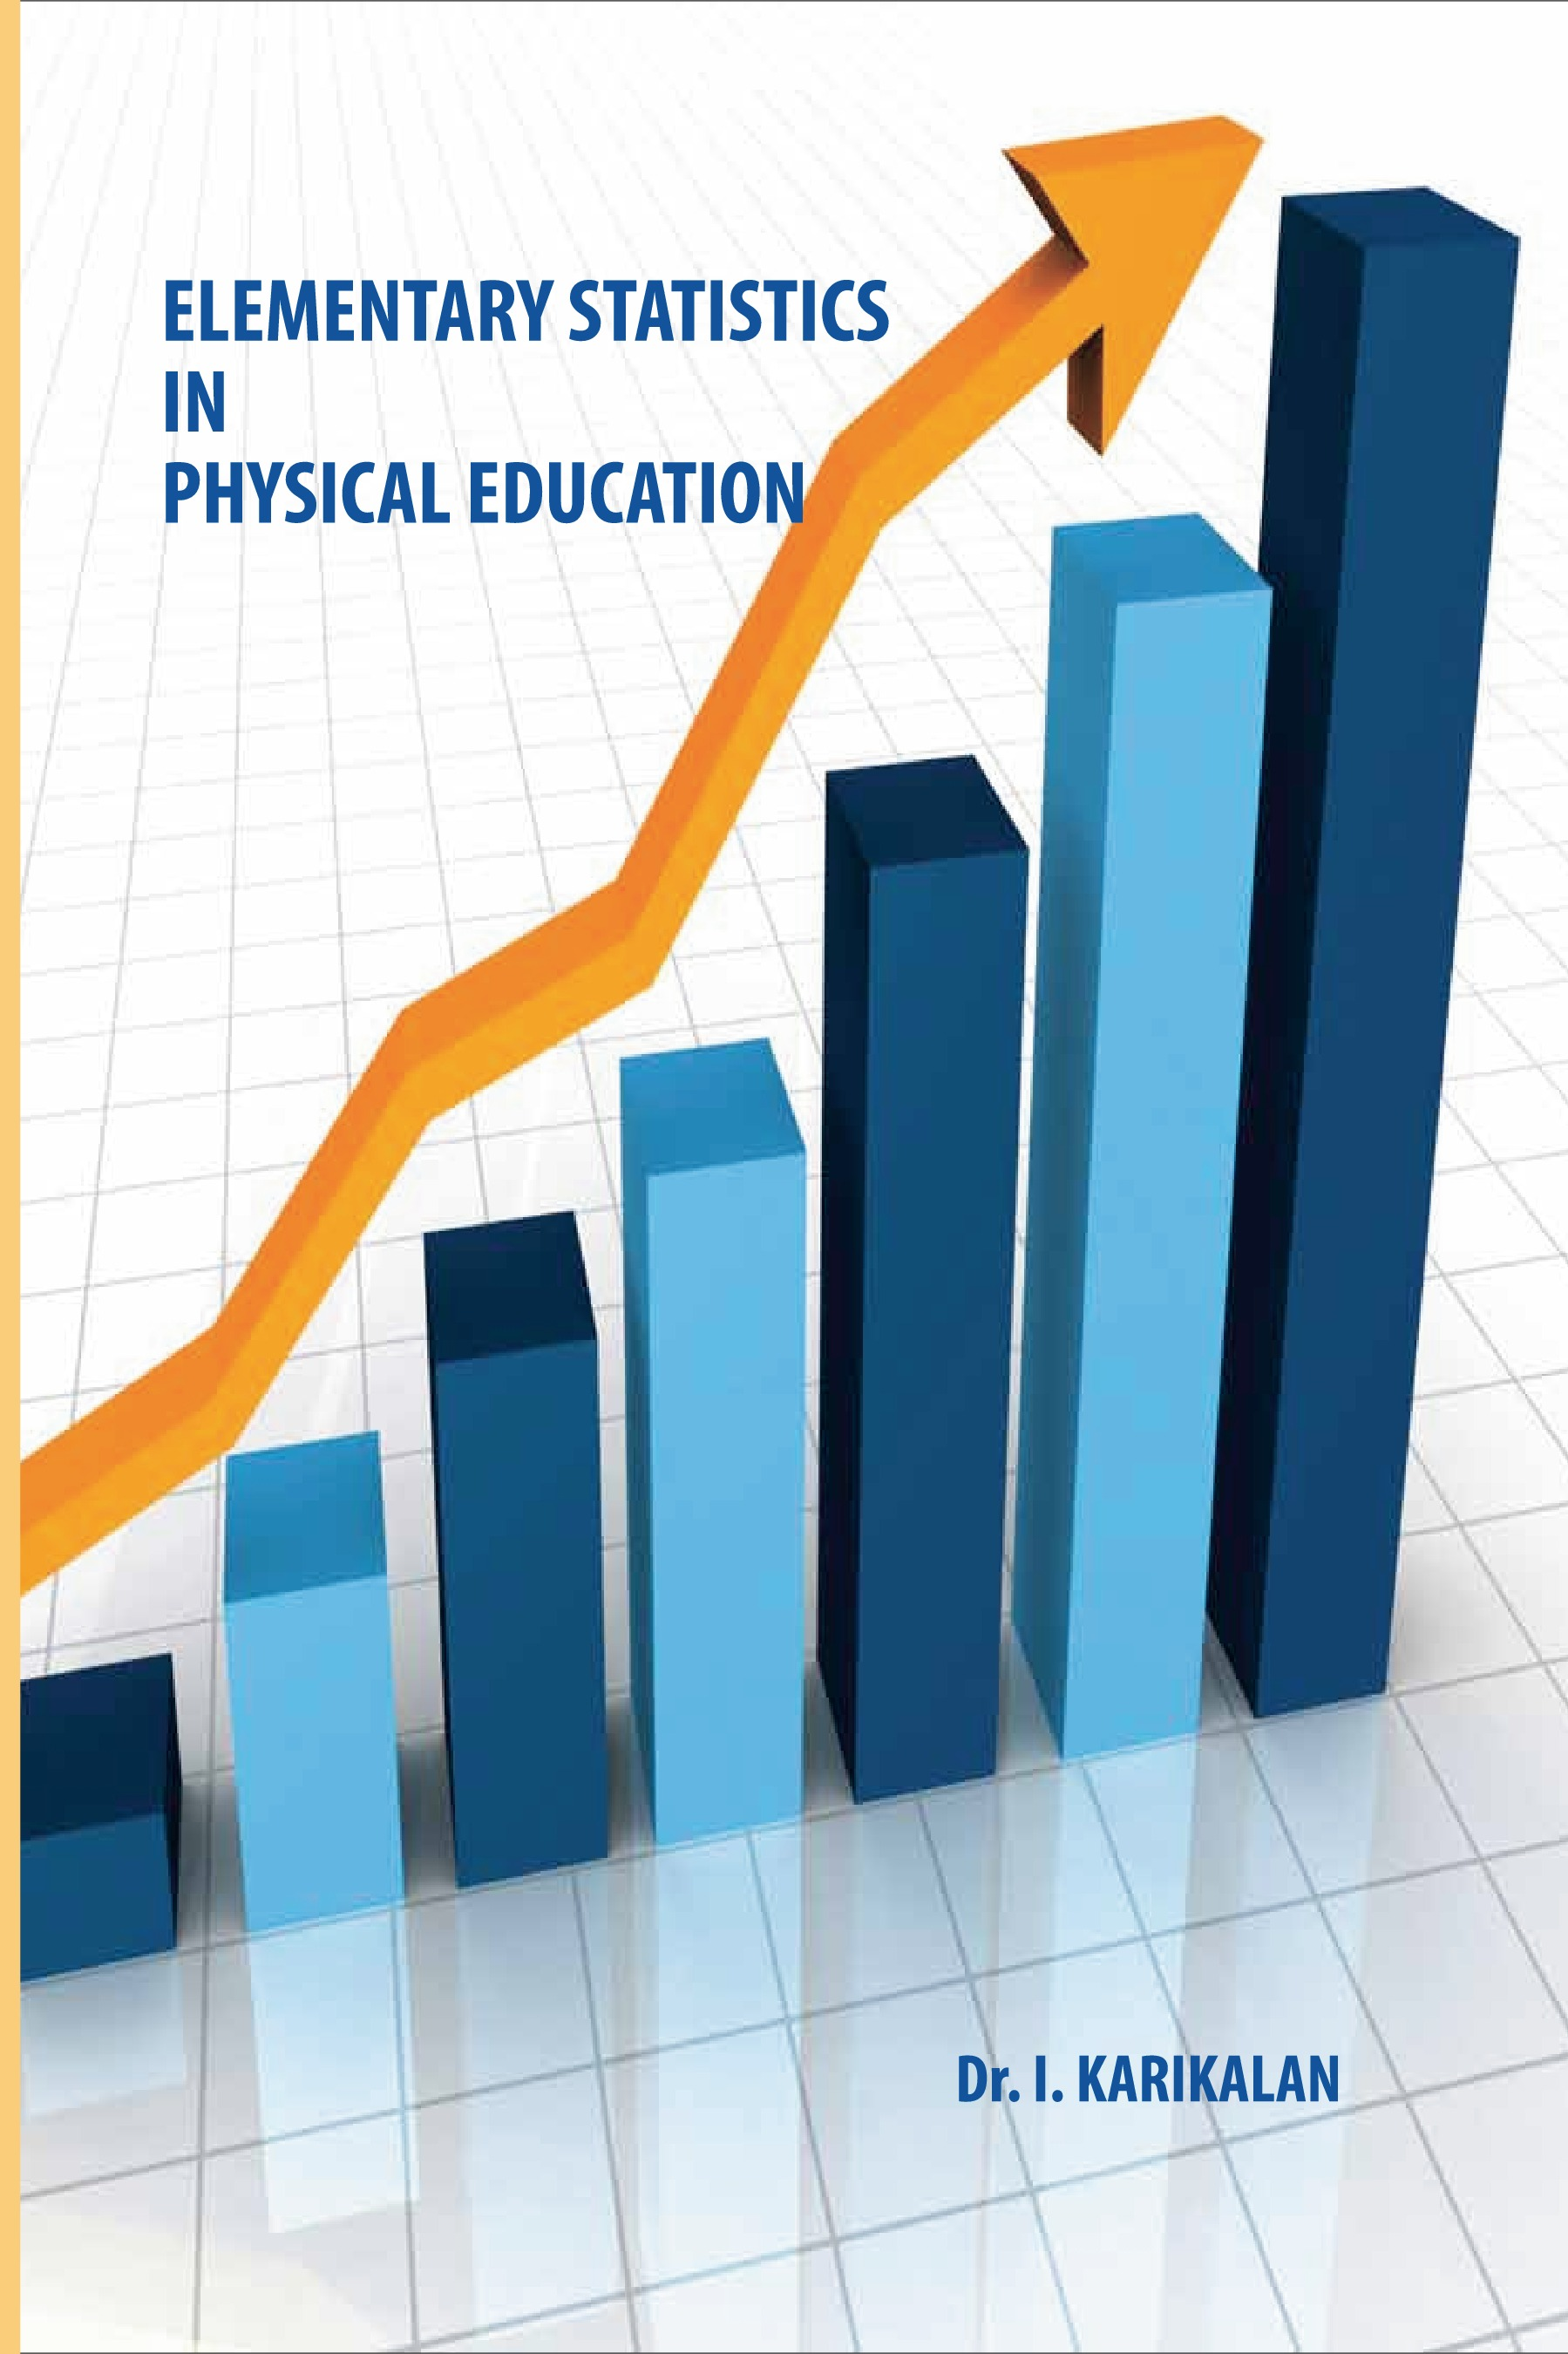 ELEMENTARY STATISTICS IN PHYSICAL EDUCATION | Pothi com